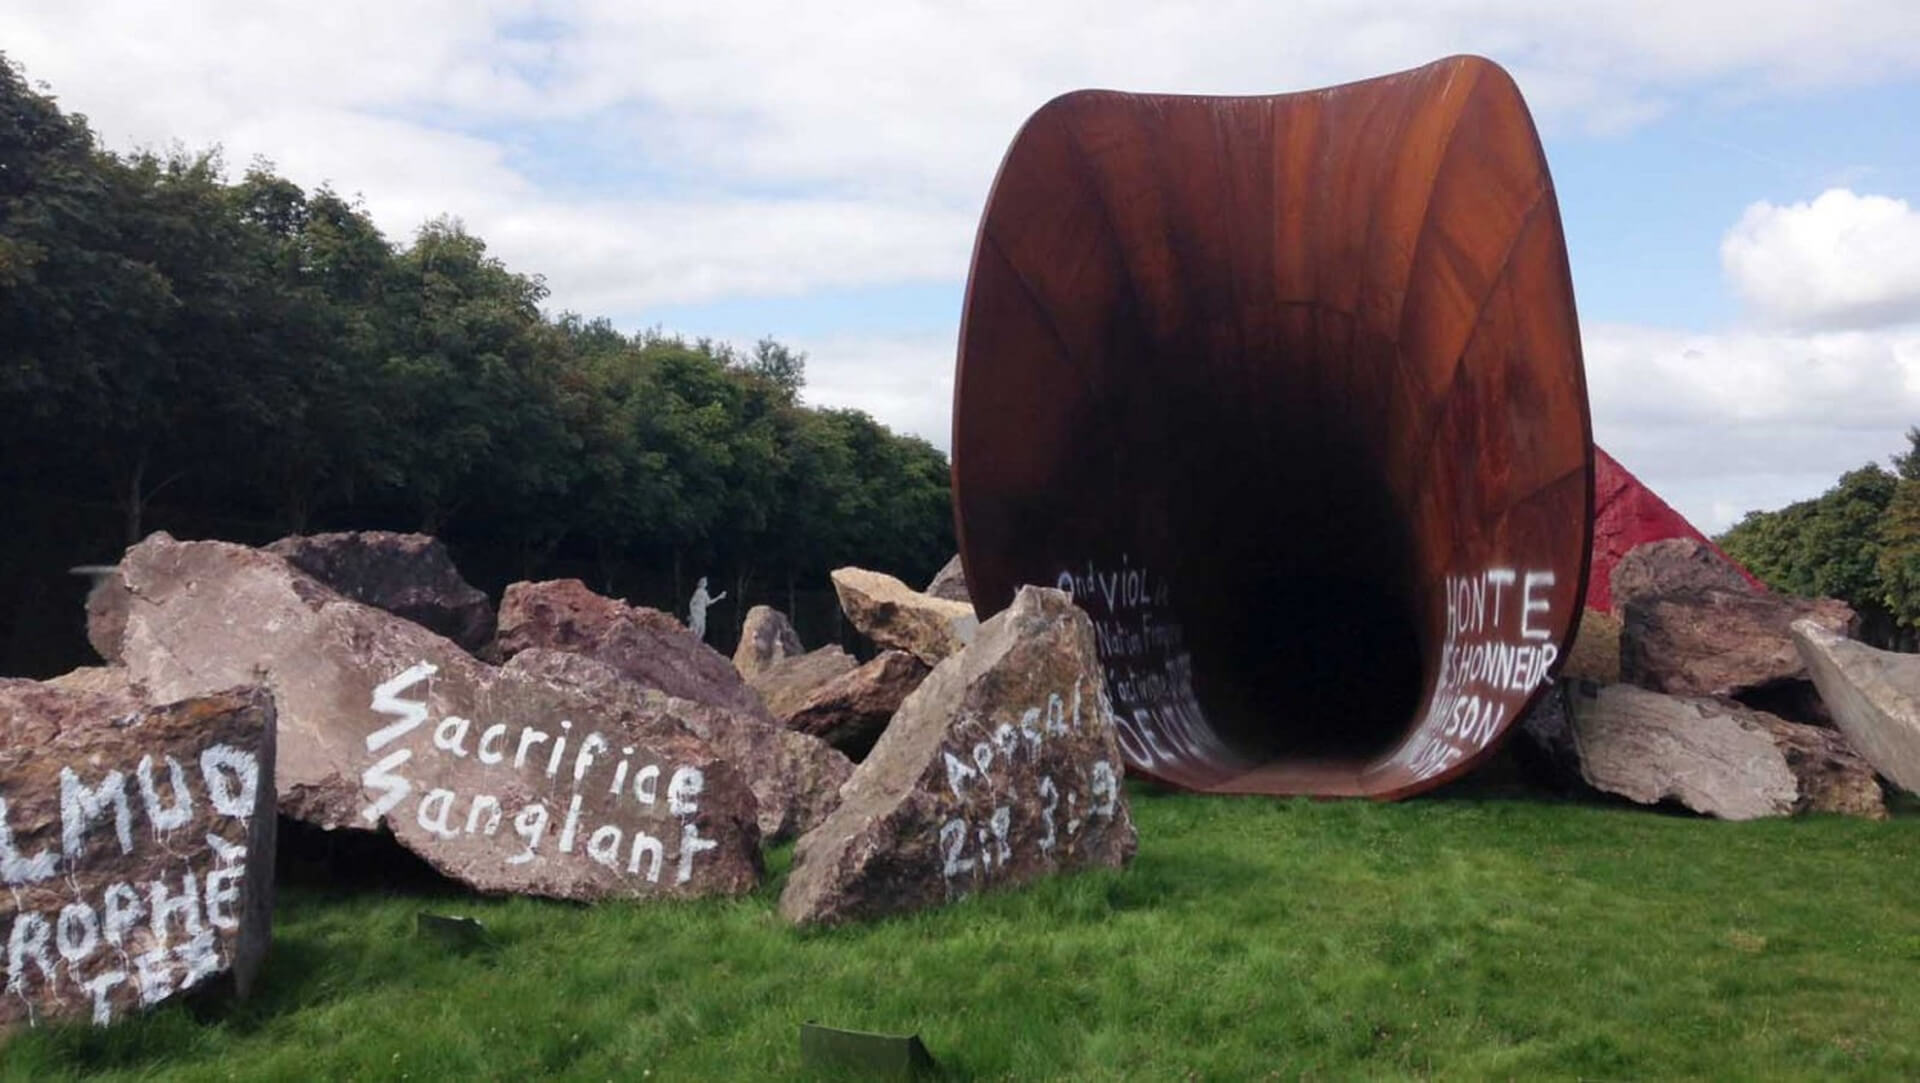 Anti-Semitic graffiti sprayed on Indian-Jewish artist Anish Kapoor's work The Dirty Corner/ 'Queen's Vagina' at the Palace of Versailles | STIRworld